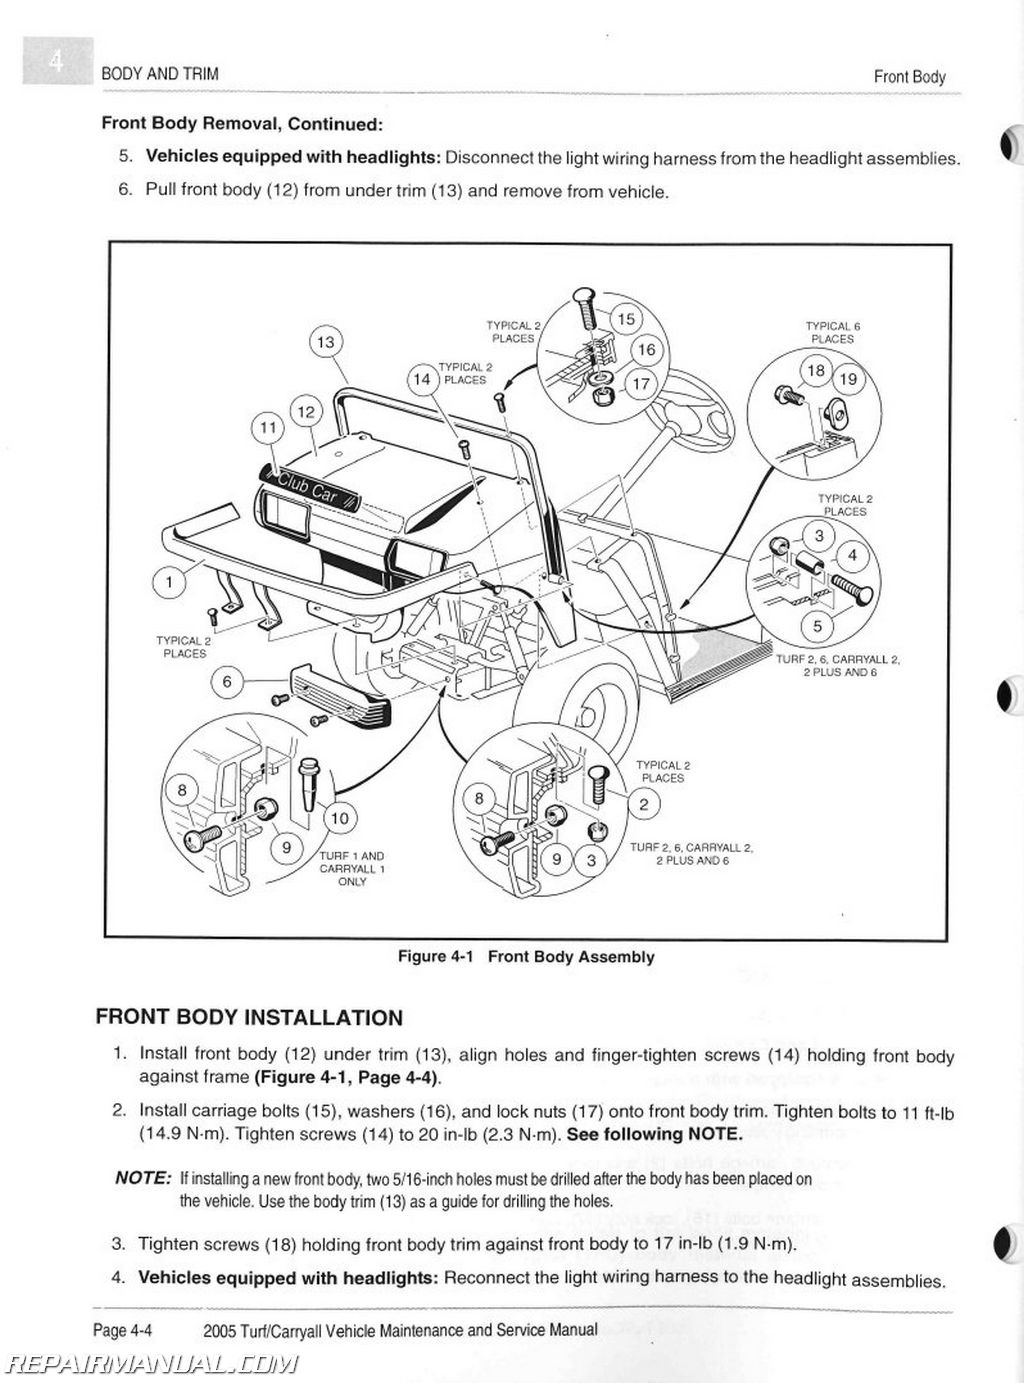 club car carryall 6 wiring diagram get free image about